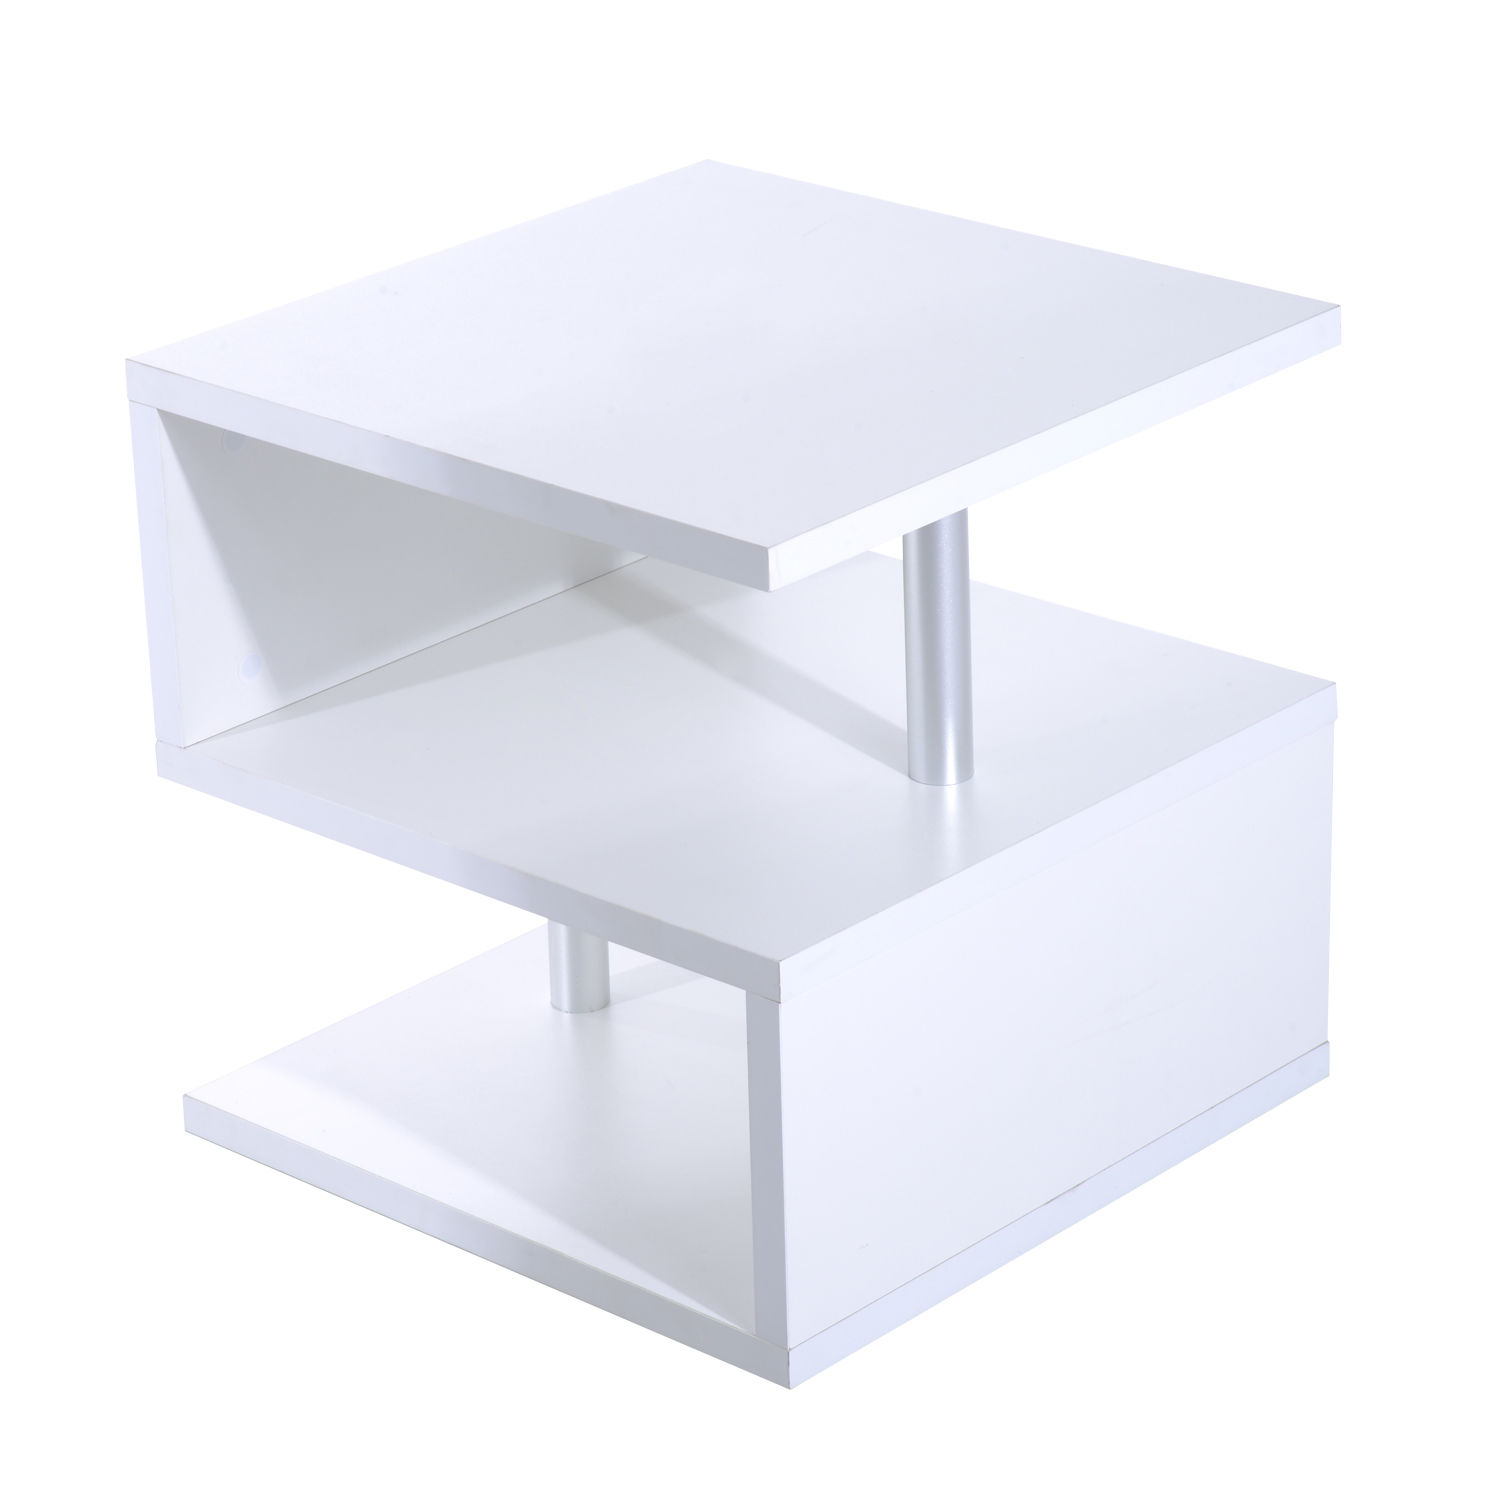 Coffee Tray Sofa Side Table: Side Coffee Table Tray Sofa Ottoman Couch Room Console